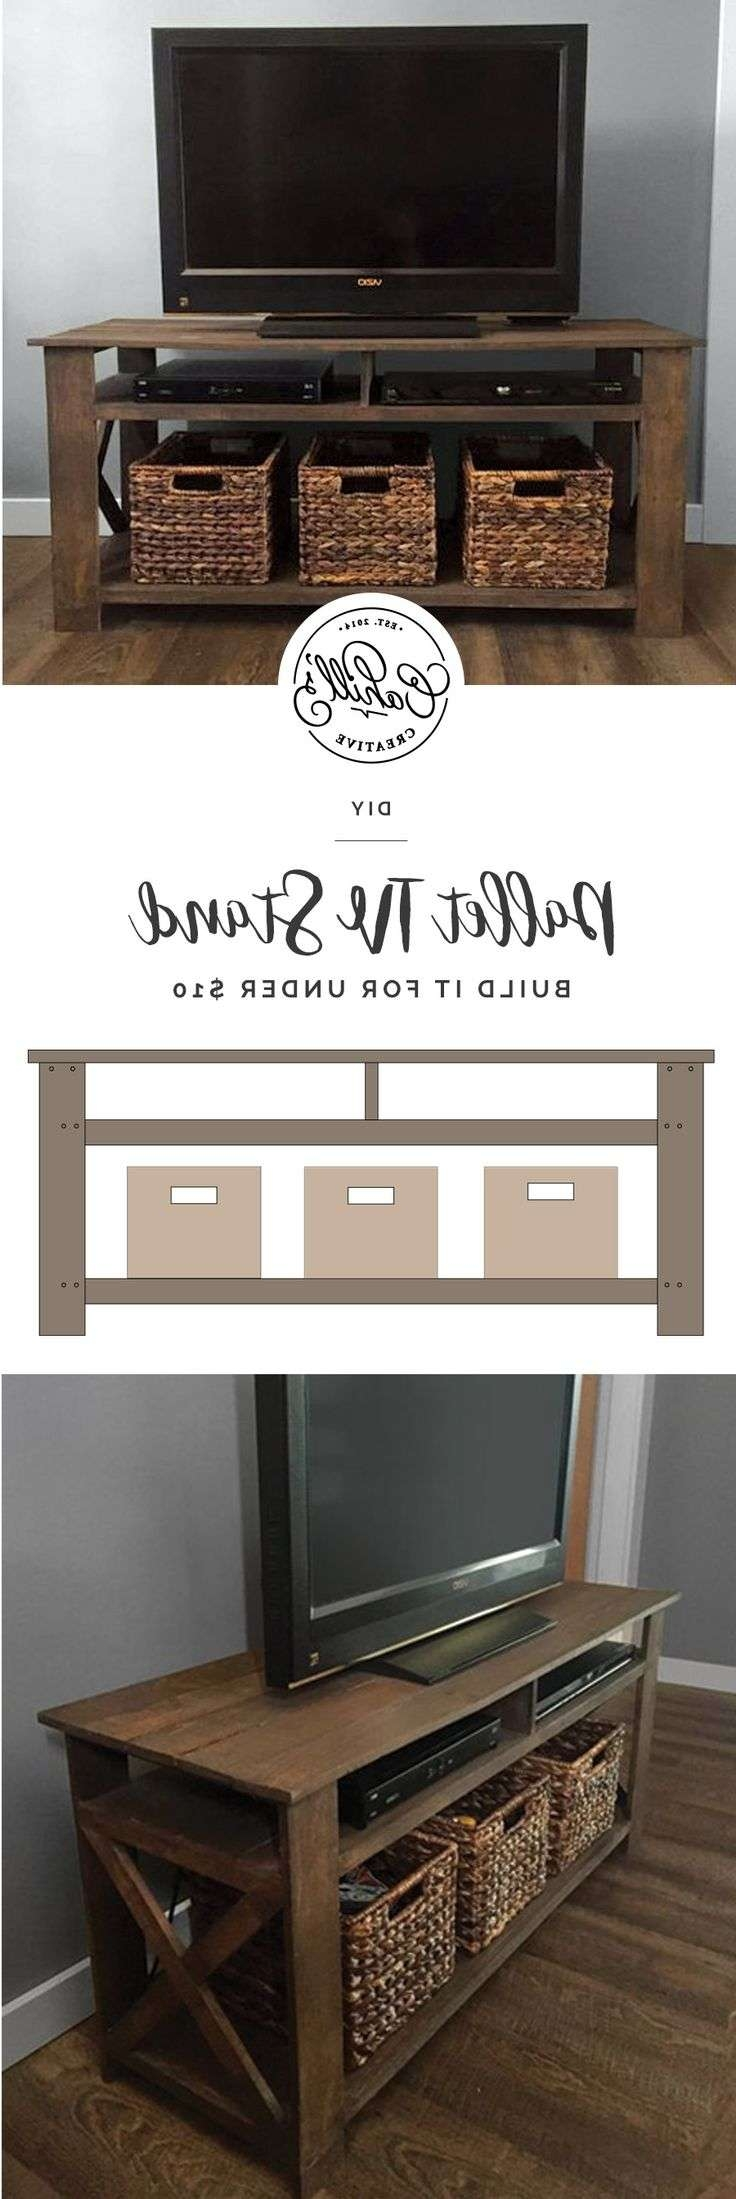 Best 25+ Tv Stands Ideas On Pinterest | Diy Tv Stand, Tv Stand Inside Tv Stands 38 Inches Wide (View 15 of 15)